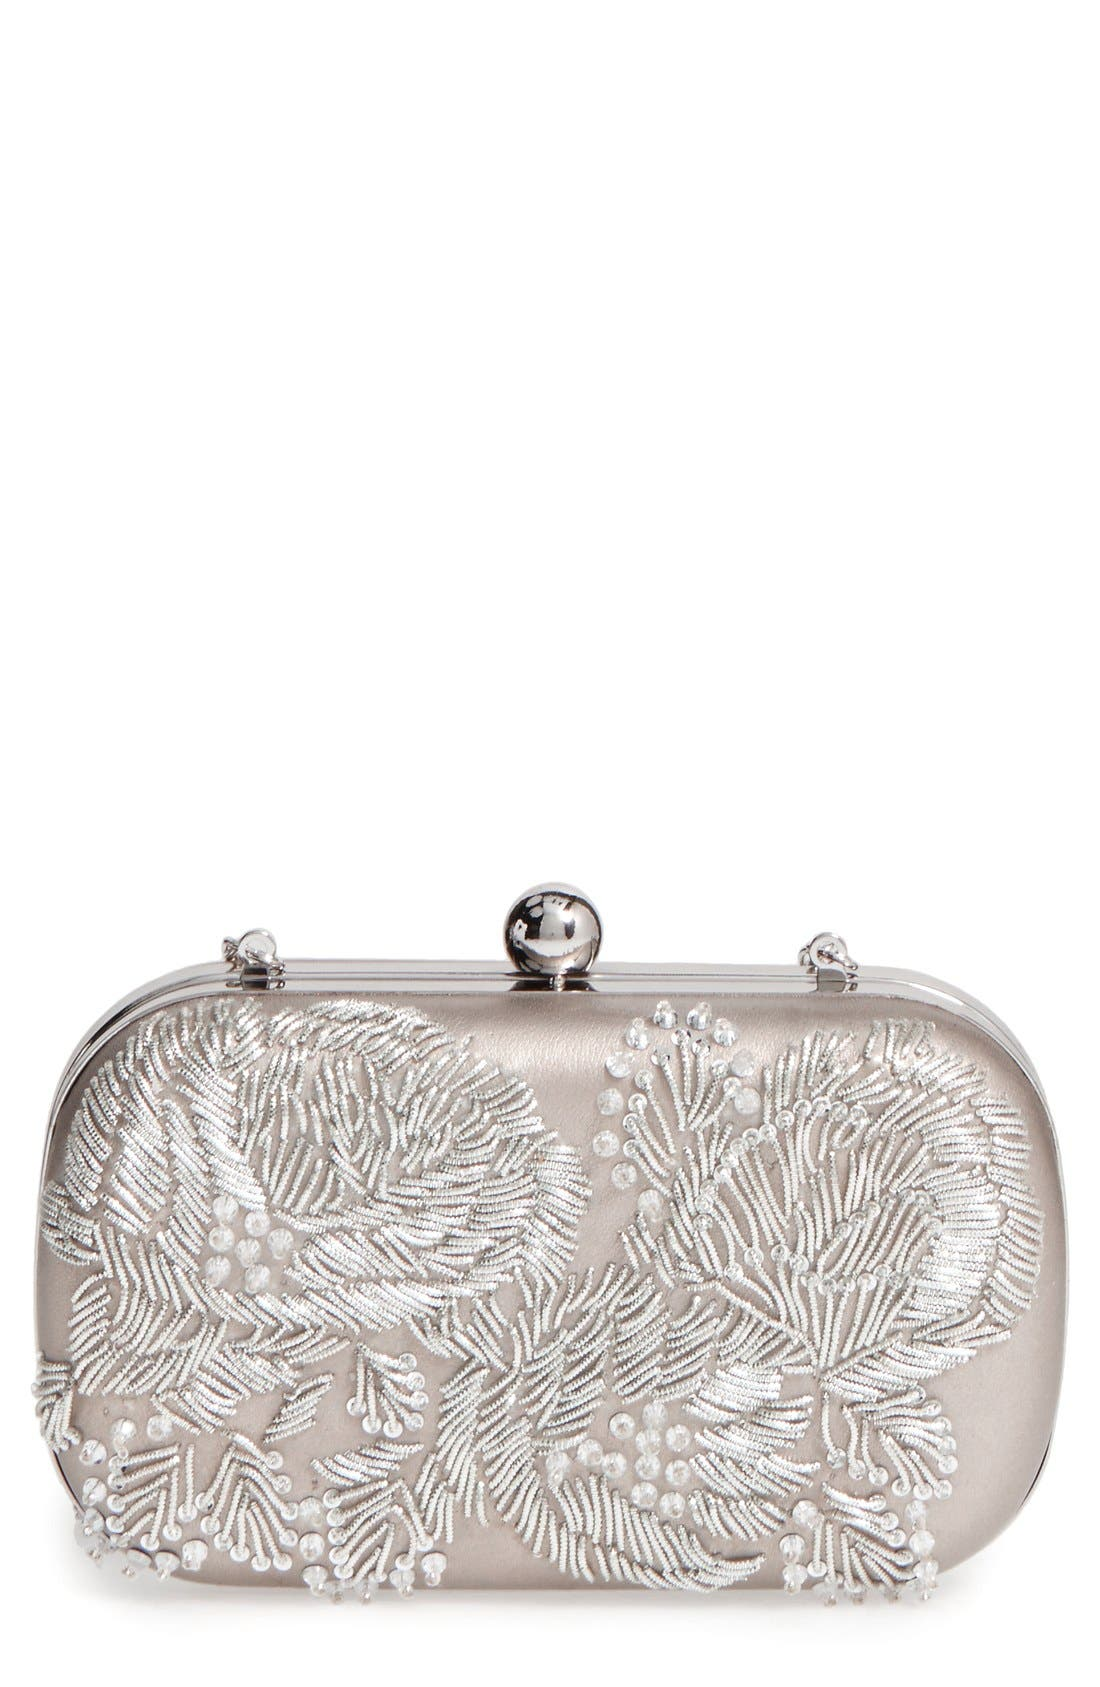 Alternate Image 1 Selected - La Regale Floral Metallic Embroidered Clutch